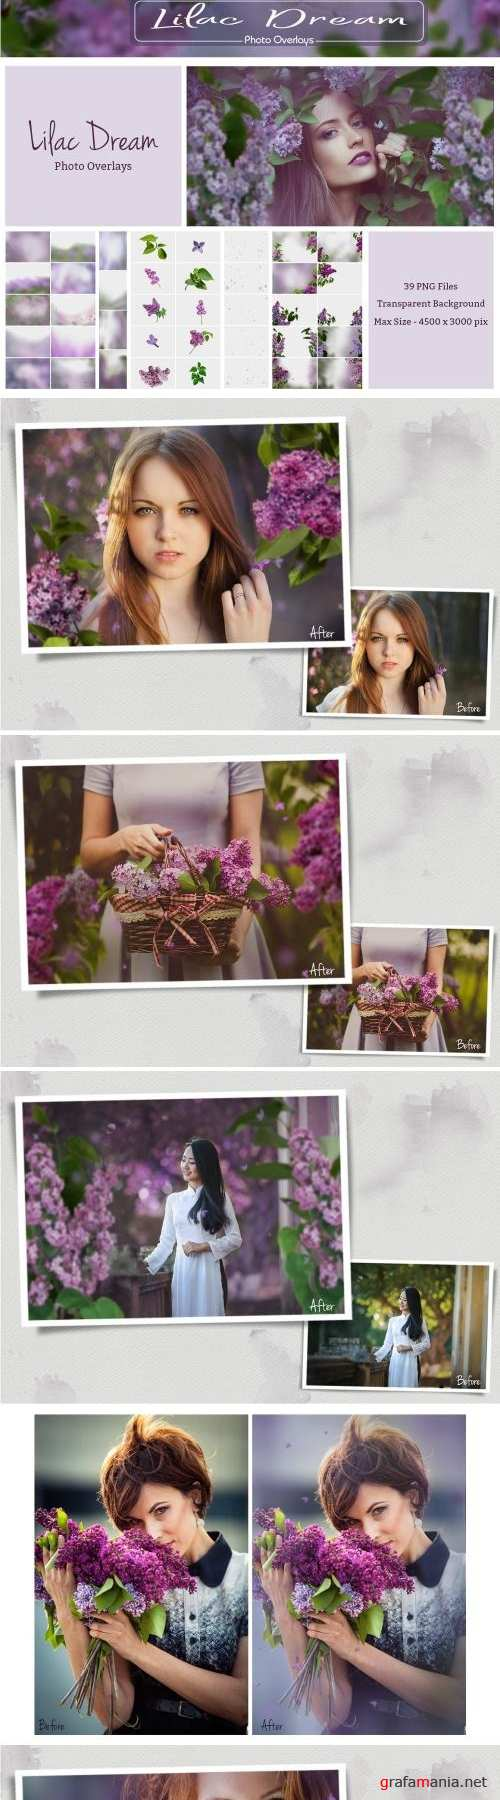 Lilac Photo Overlays (39 PNG) - 2581969